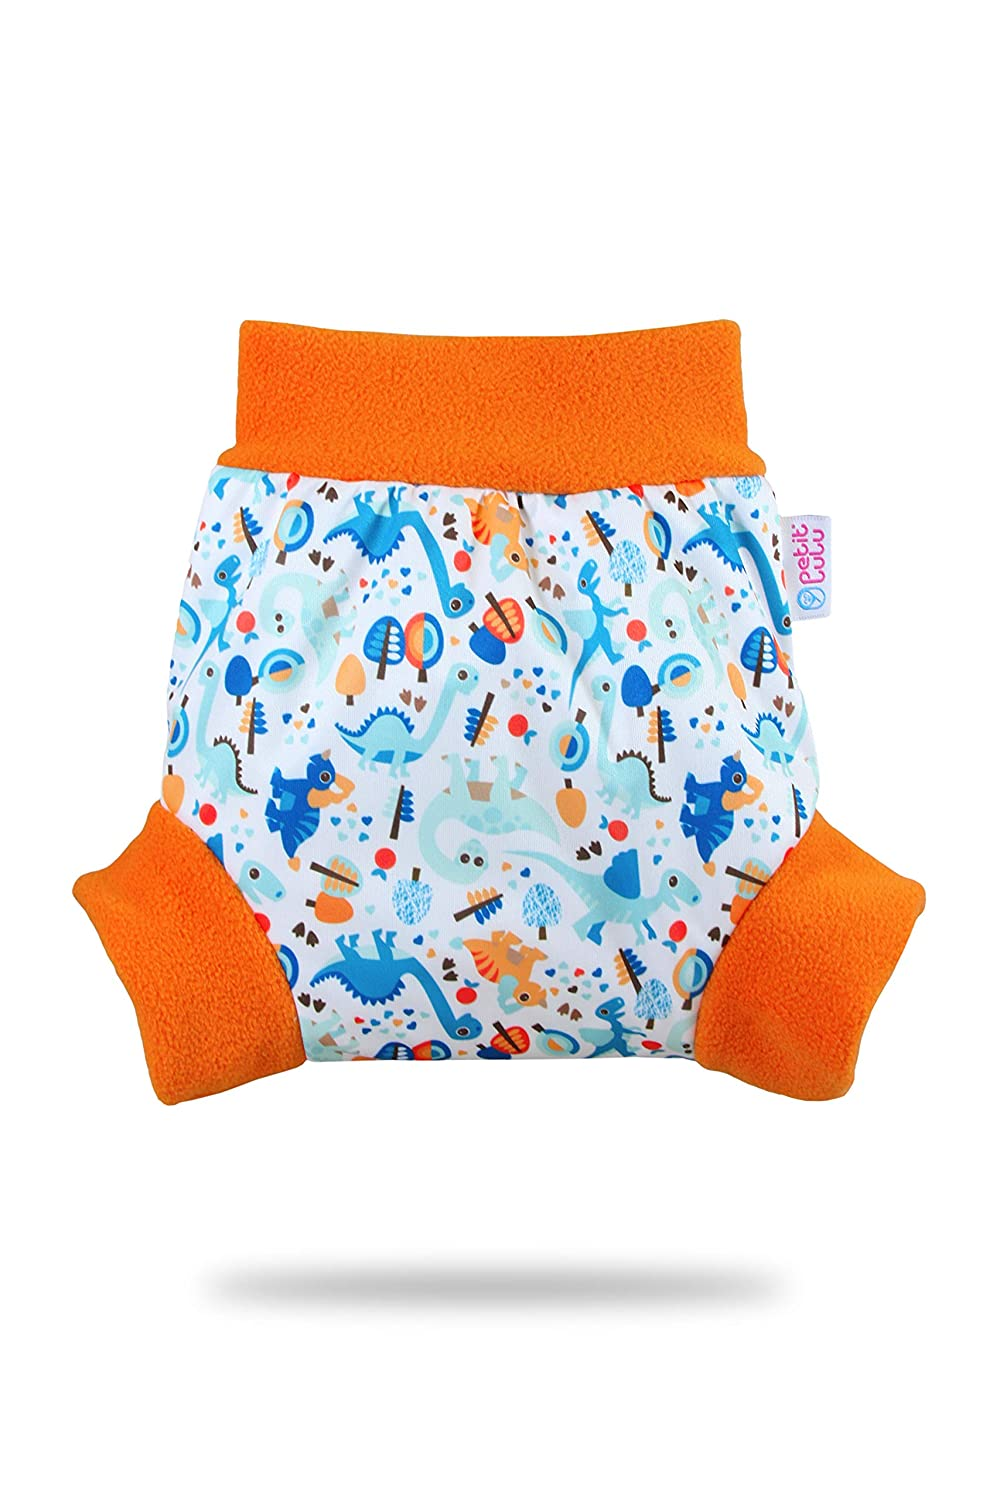 Made in Europe Sizes XS//S//M//L//XL Turquoise Birds, Size M Petit Lulu Pull Up Diaper Wrap Reusable /& Washable Waterproof Easy /& Quick Changing